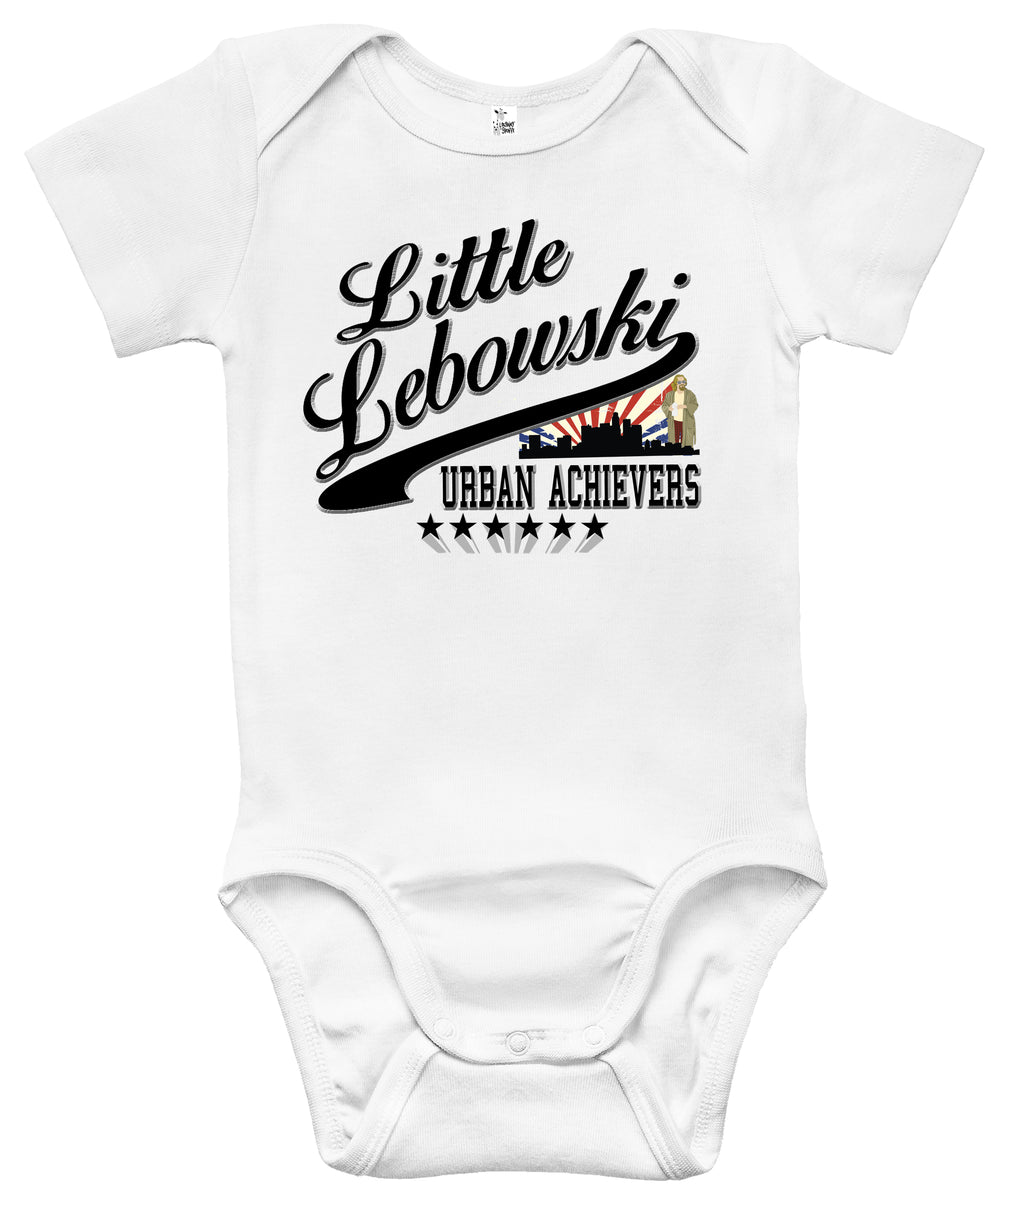 Baby Bodysuit - Little Lebowski Urban Achievers